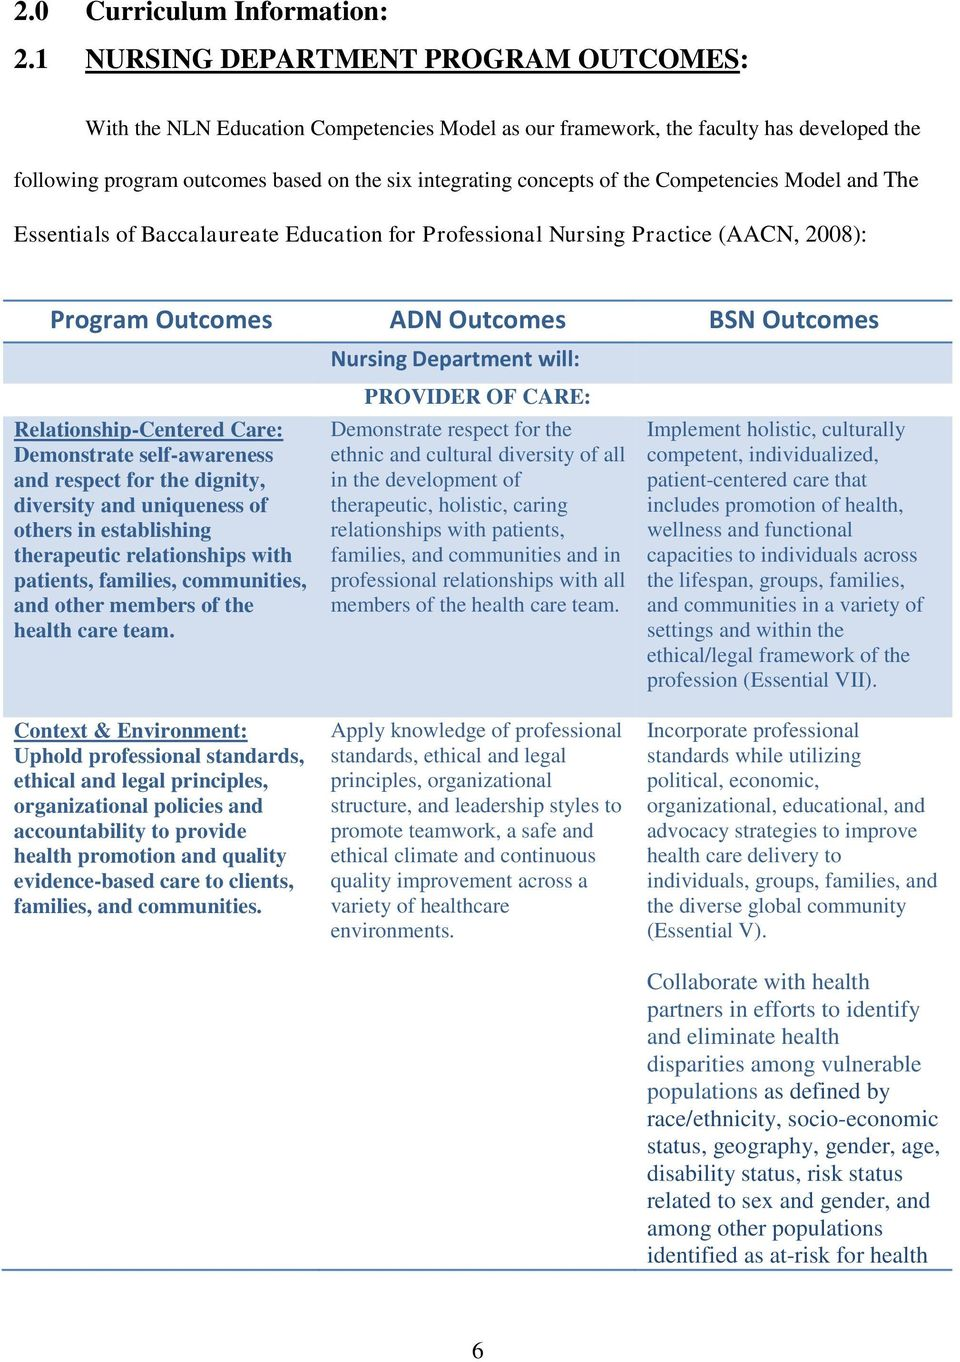 the Competencies Model and The Essentials of Baccalaureate Education for Professional Nursing Practice (AACN, 2008): Program Outcomes ADN Outcomes BSN Outcomes Relationship-Centered Care: Demonstrate